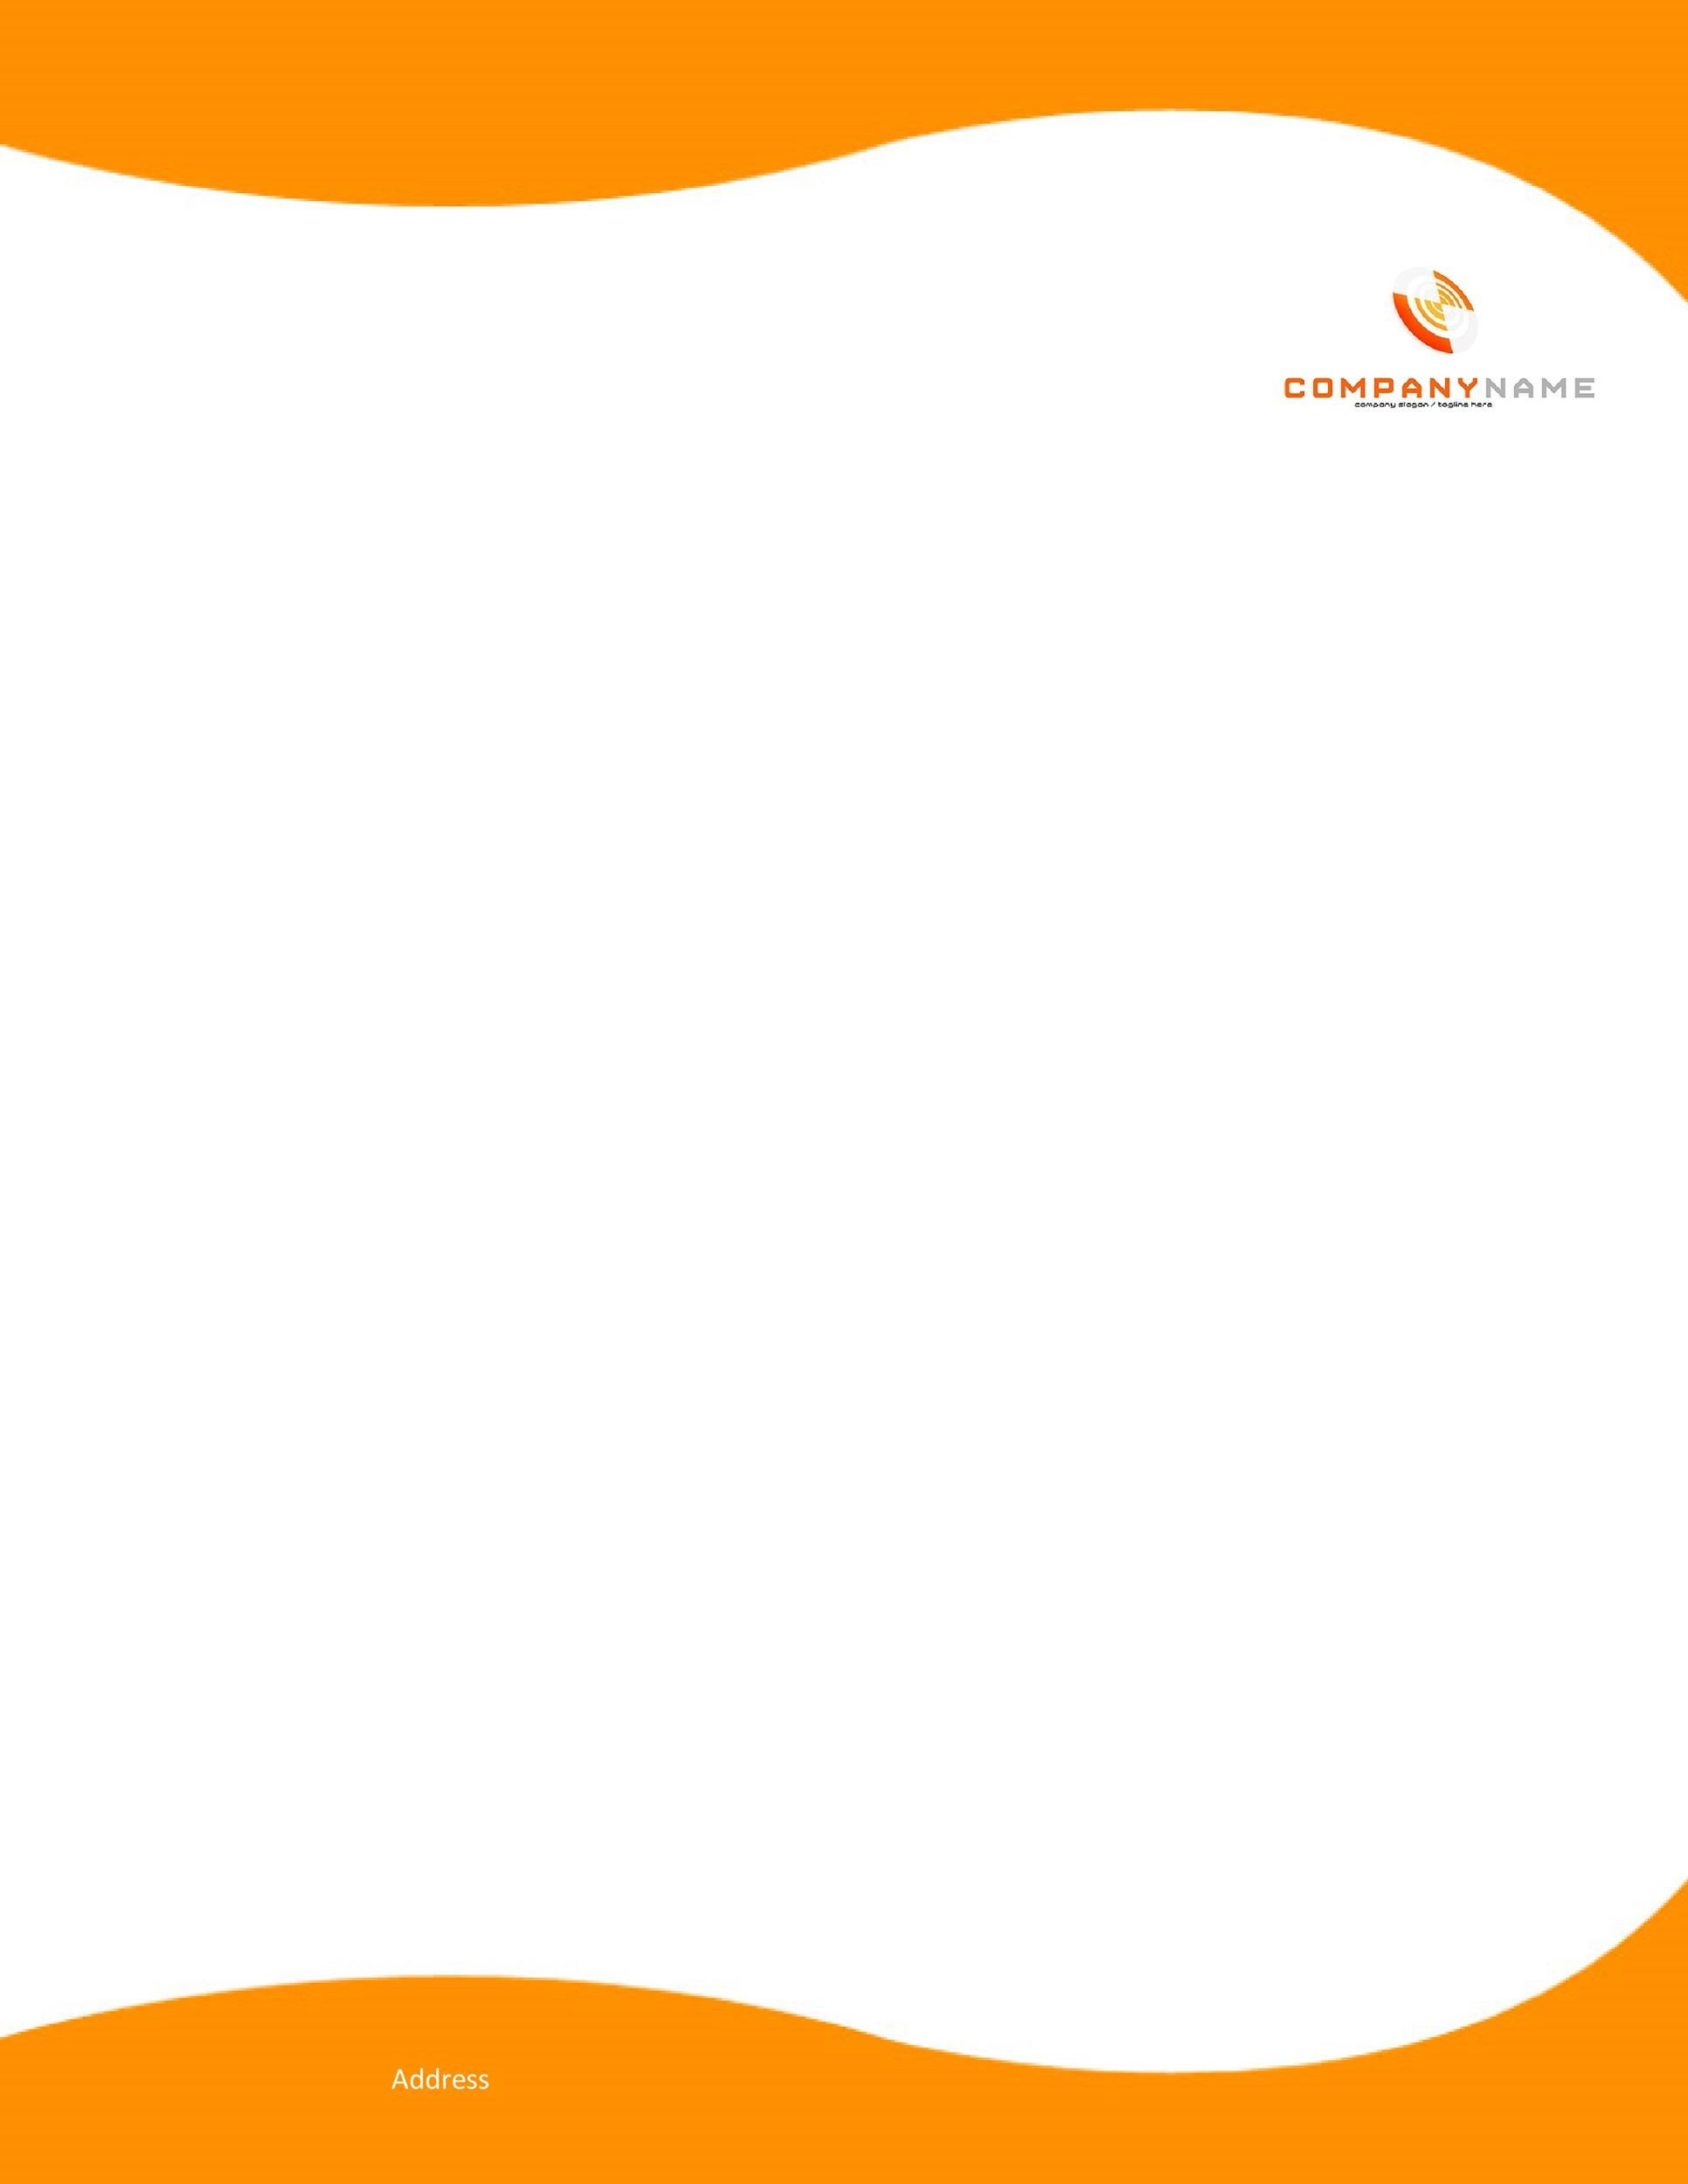 007 Unusual Letterhead Sample In Word Format Free Download Highest Quality  Design Template PsdFull